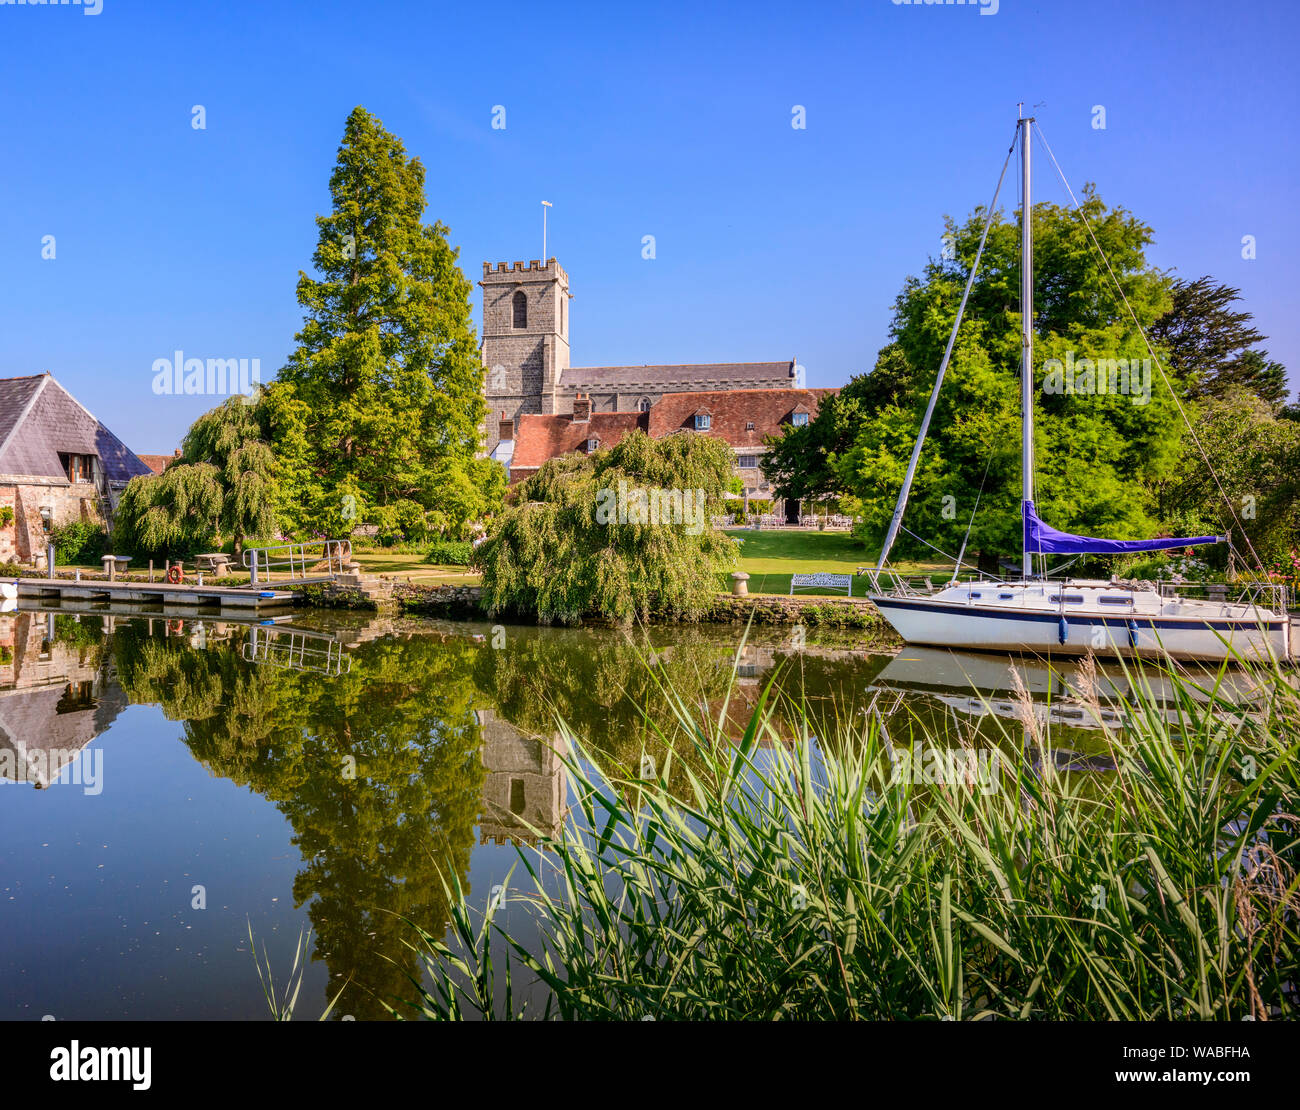 The Priory Hotel on the river Frome on Wareham, Dorset UK Stock Photo